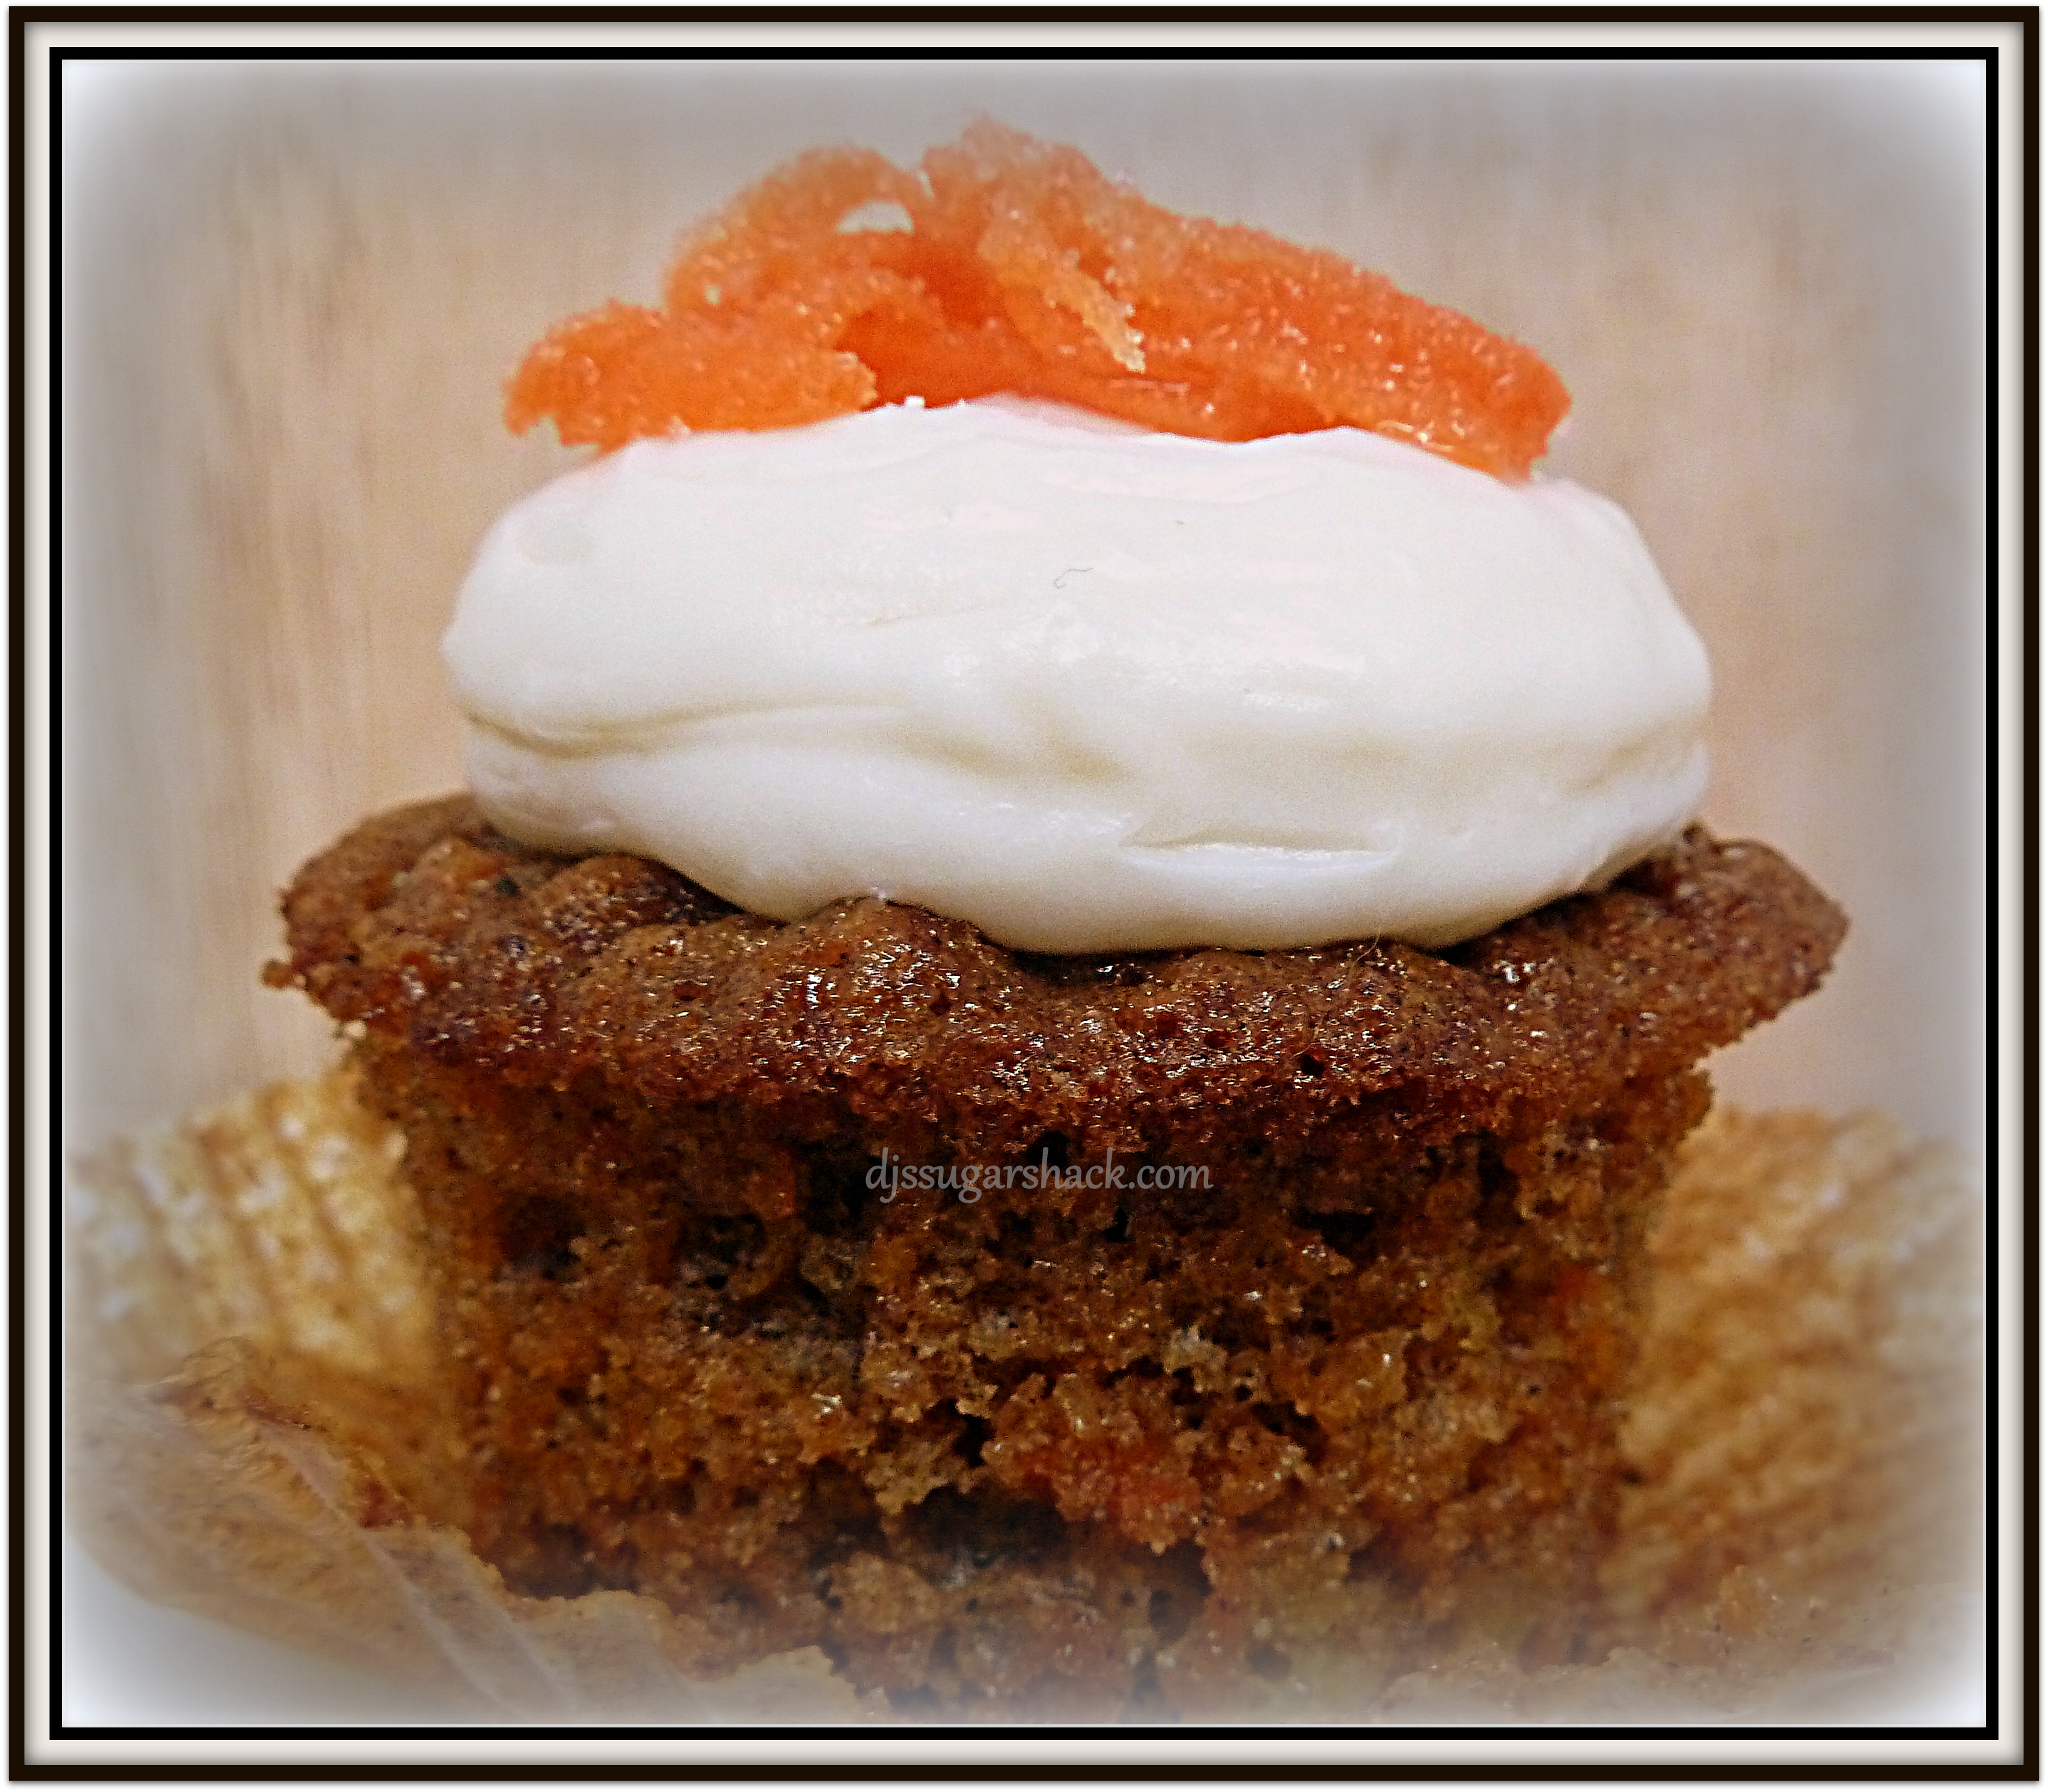 Carrot Cake Cupcakes With Cream Cheese Frosting & Candied